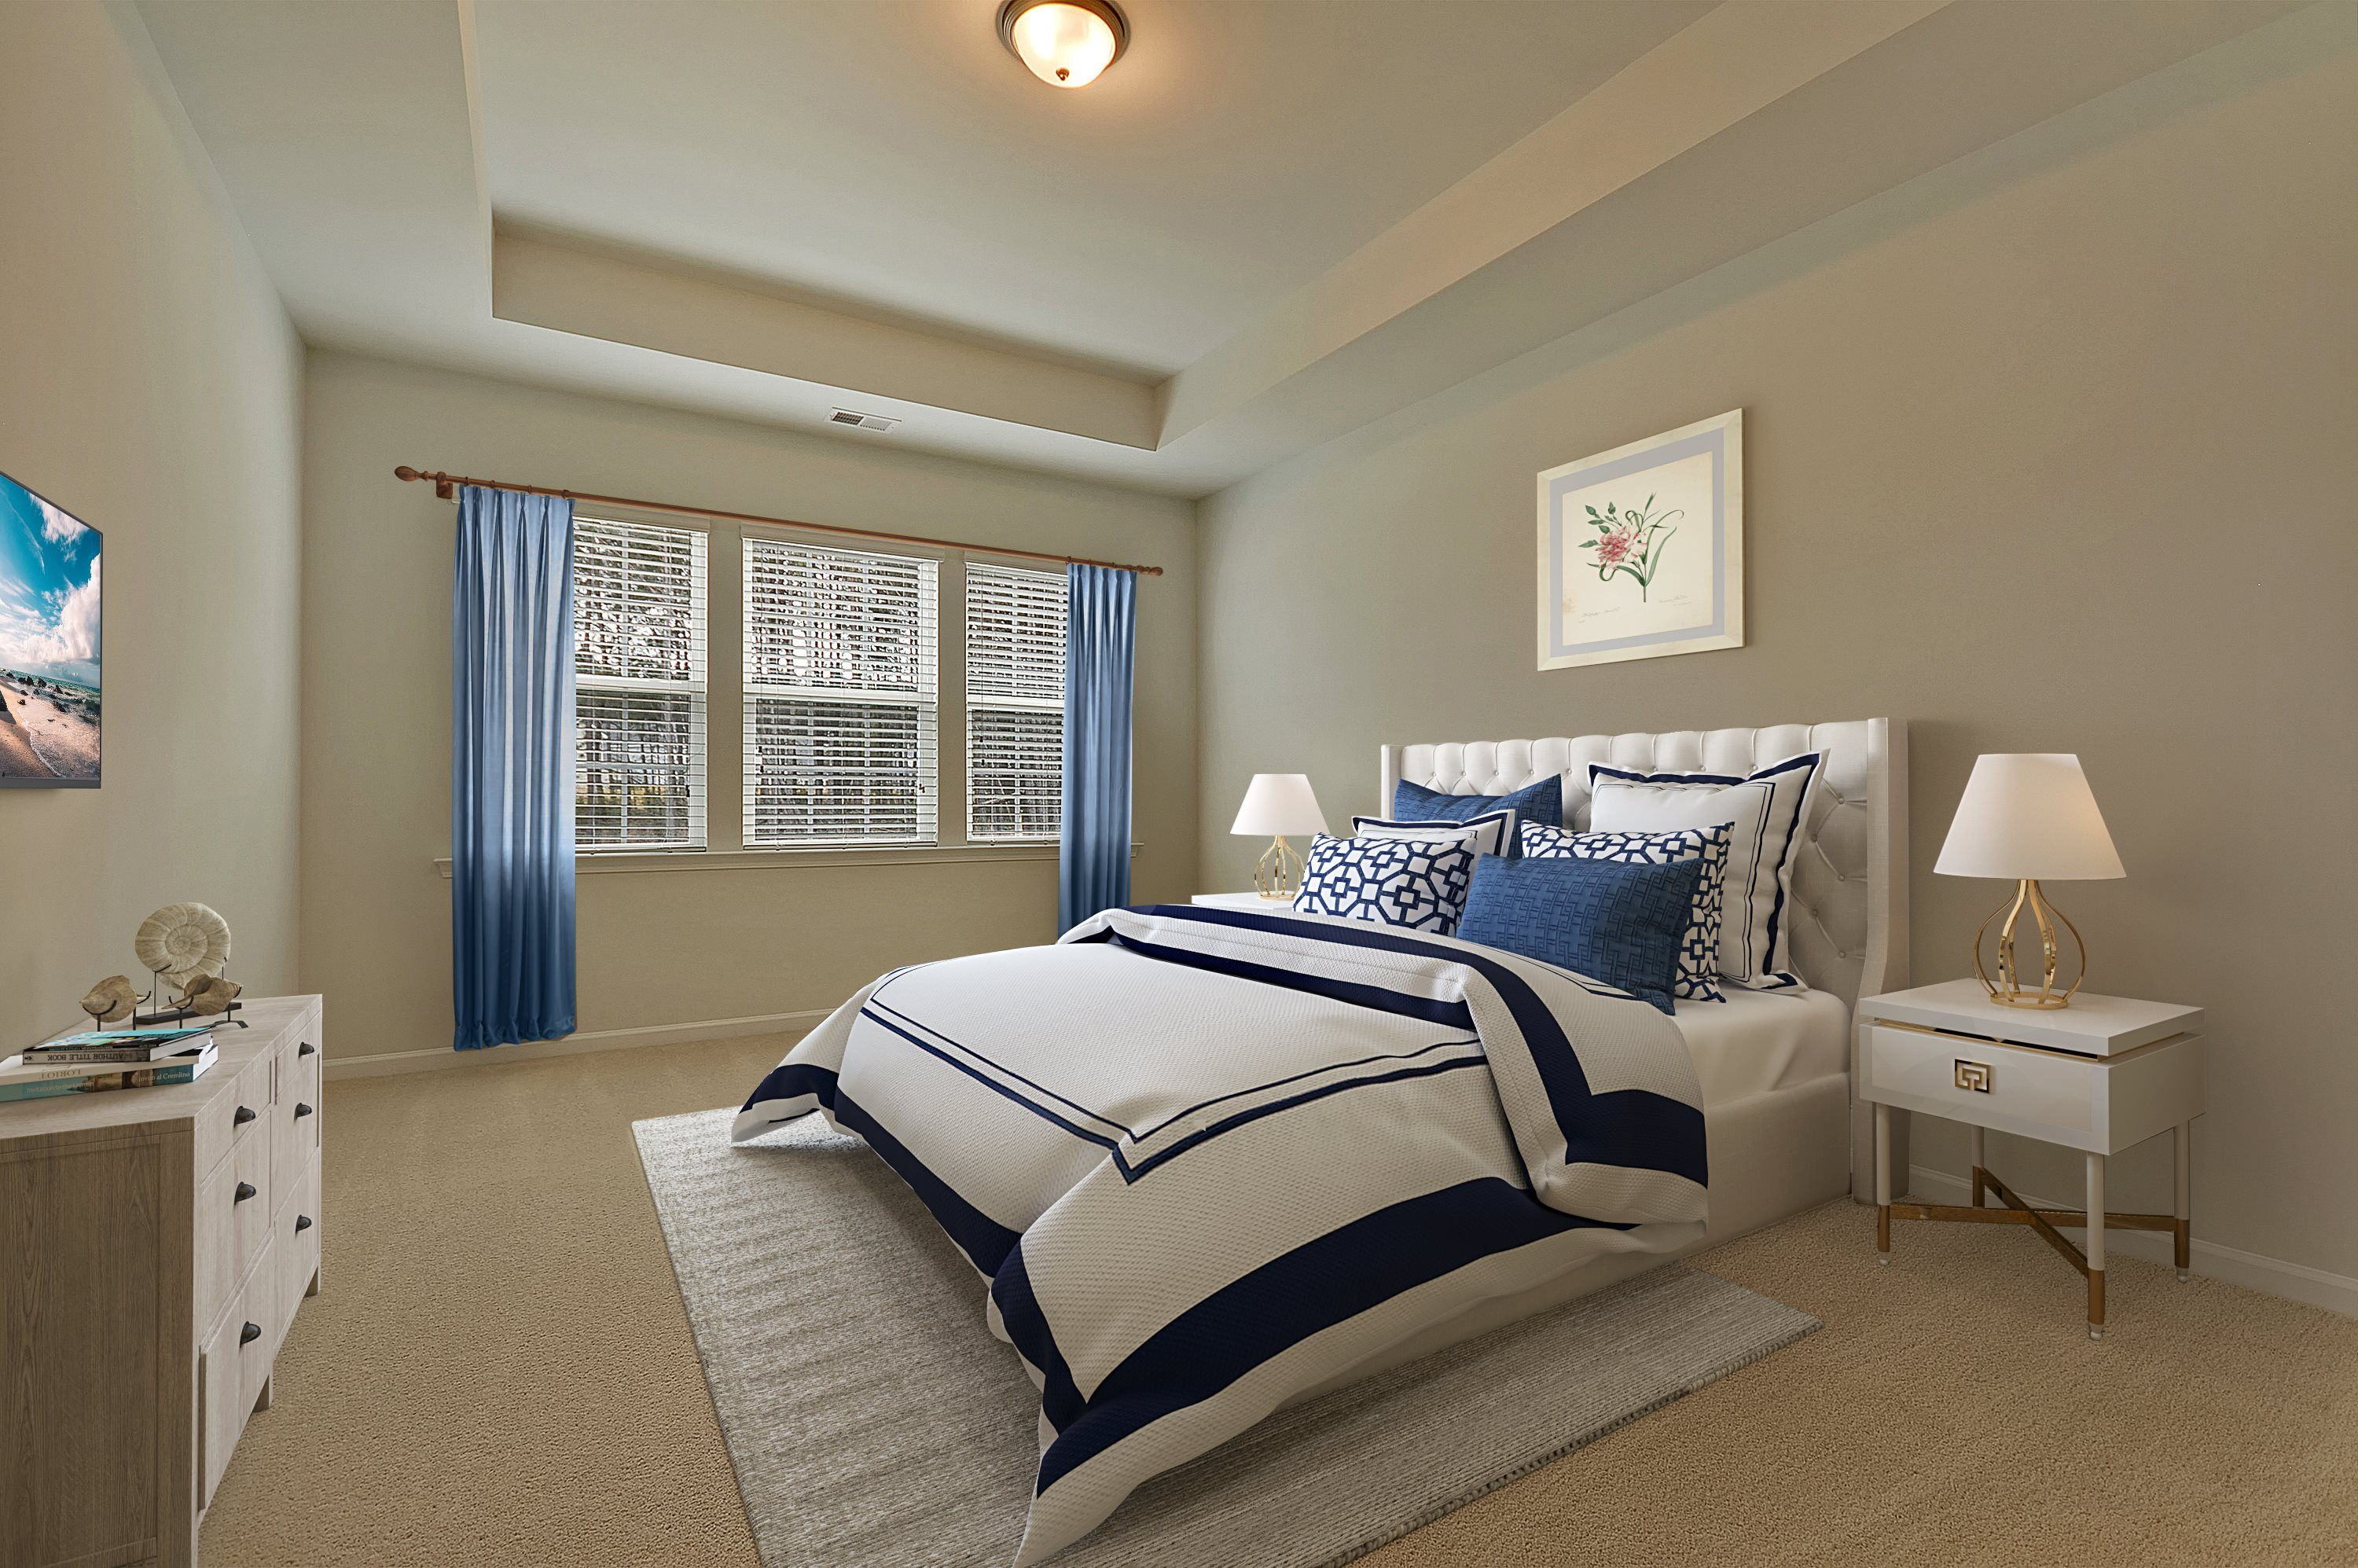 Bedroom featured in the HENNINGER By Lennar in Charleston, SC